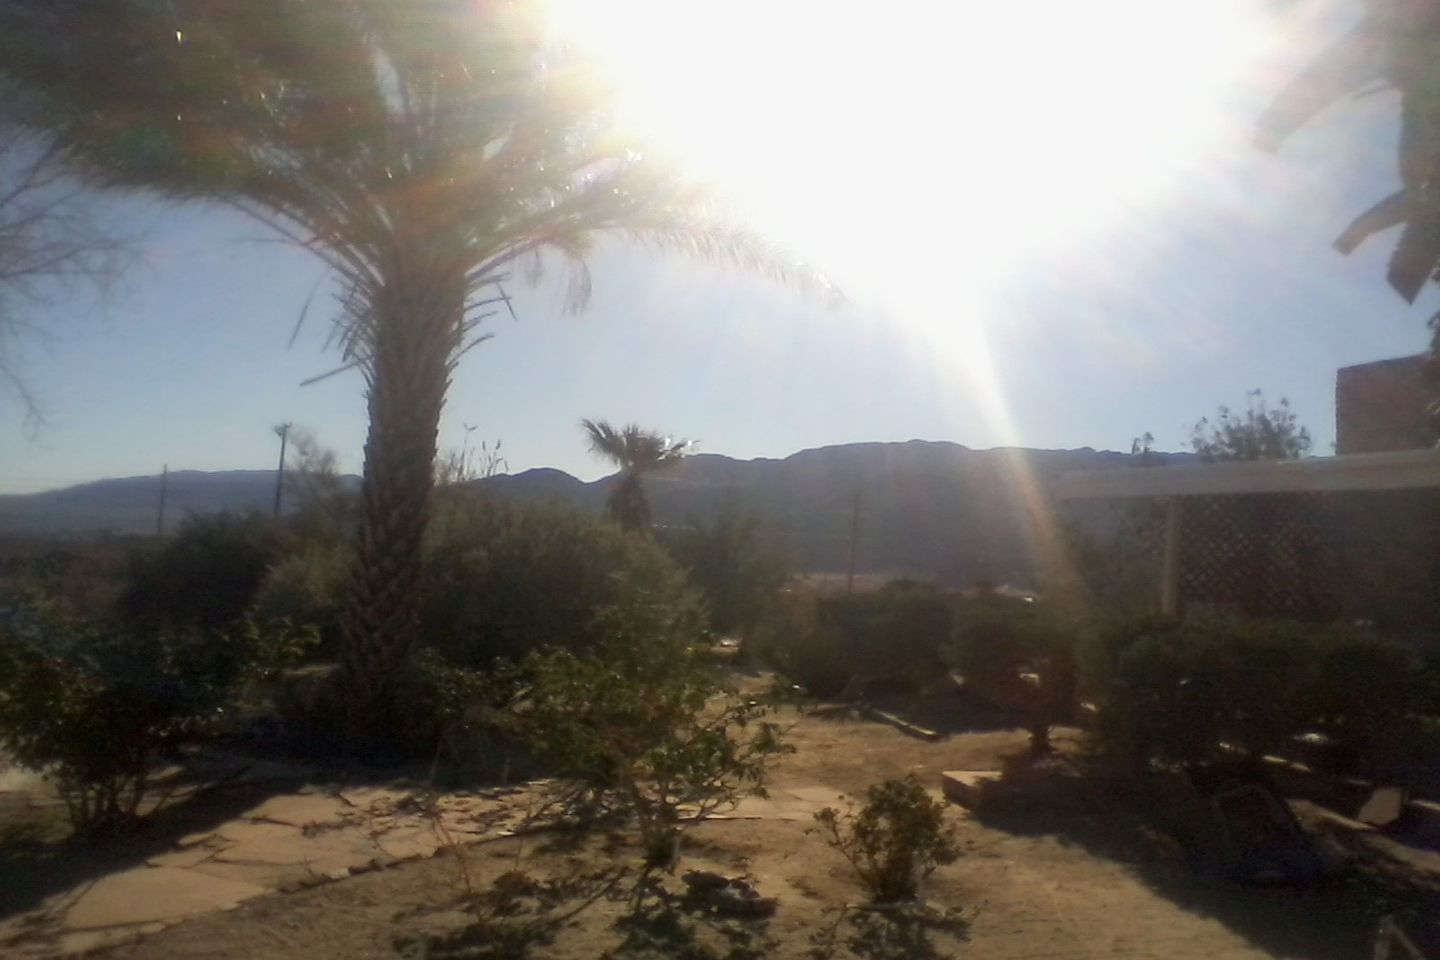 Noel's Knoll in 29 Palms